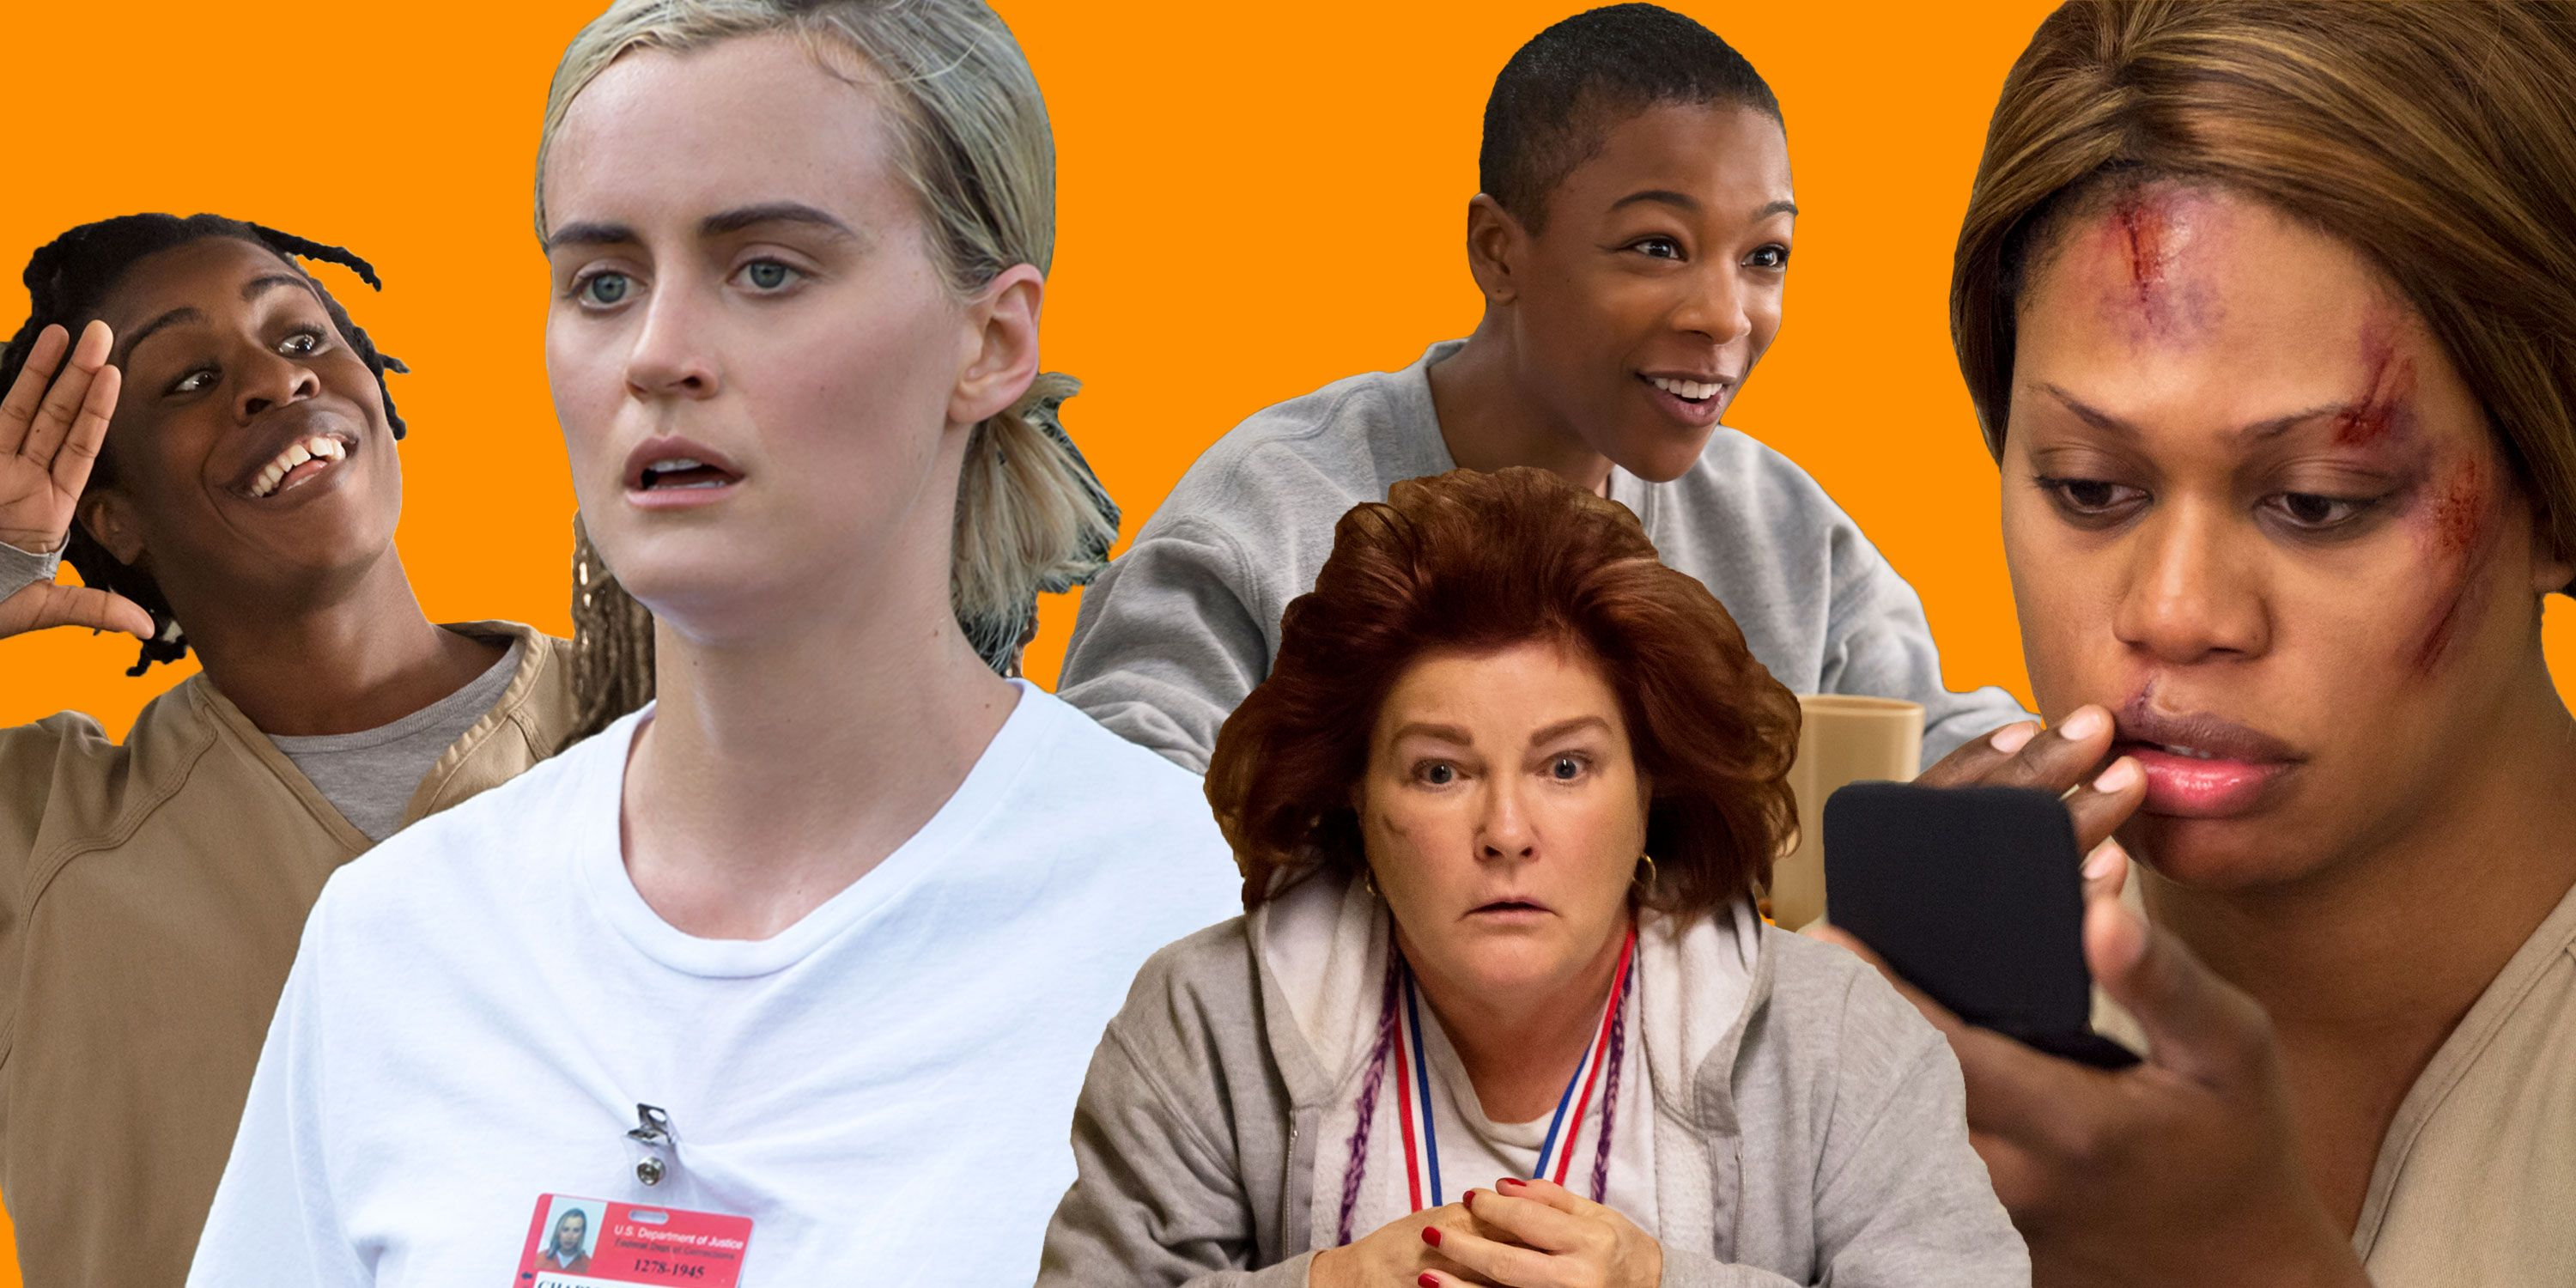 PHOTOSHOP, OITNB, Orange is the New Black shocking moments, Crazy Eyes, Piper, Red, Poussey, Sophia